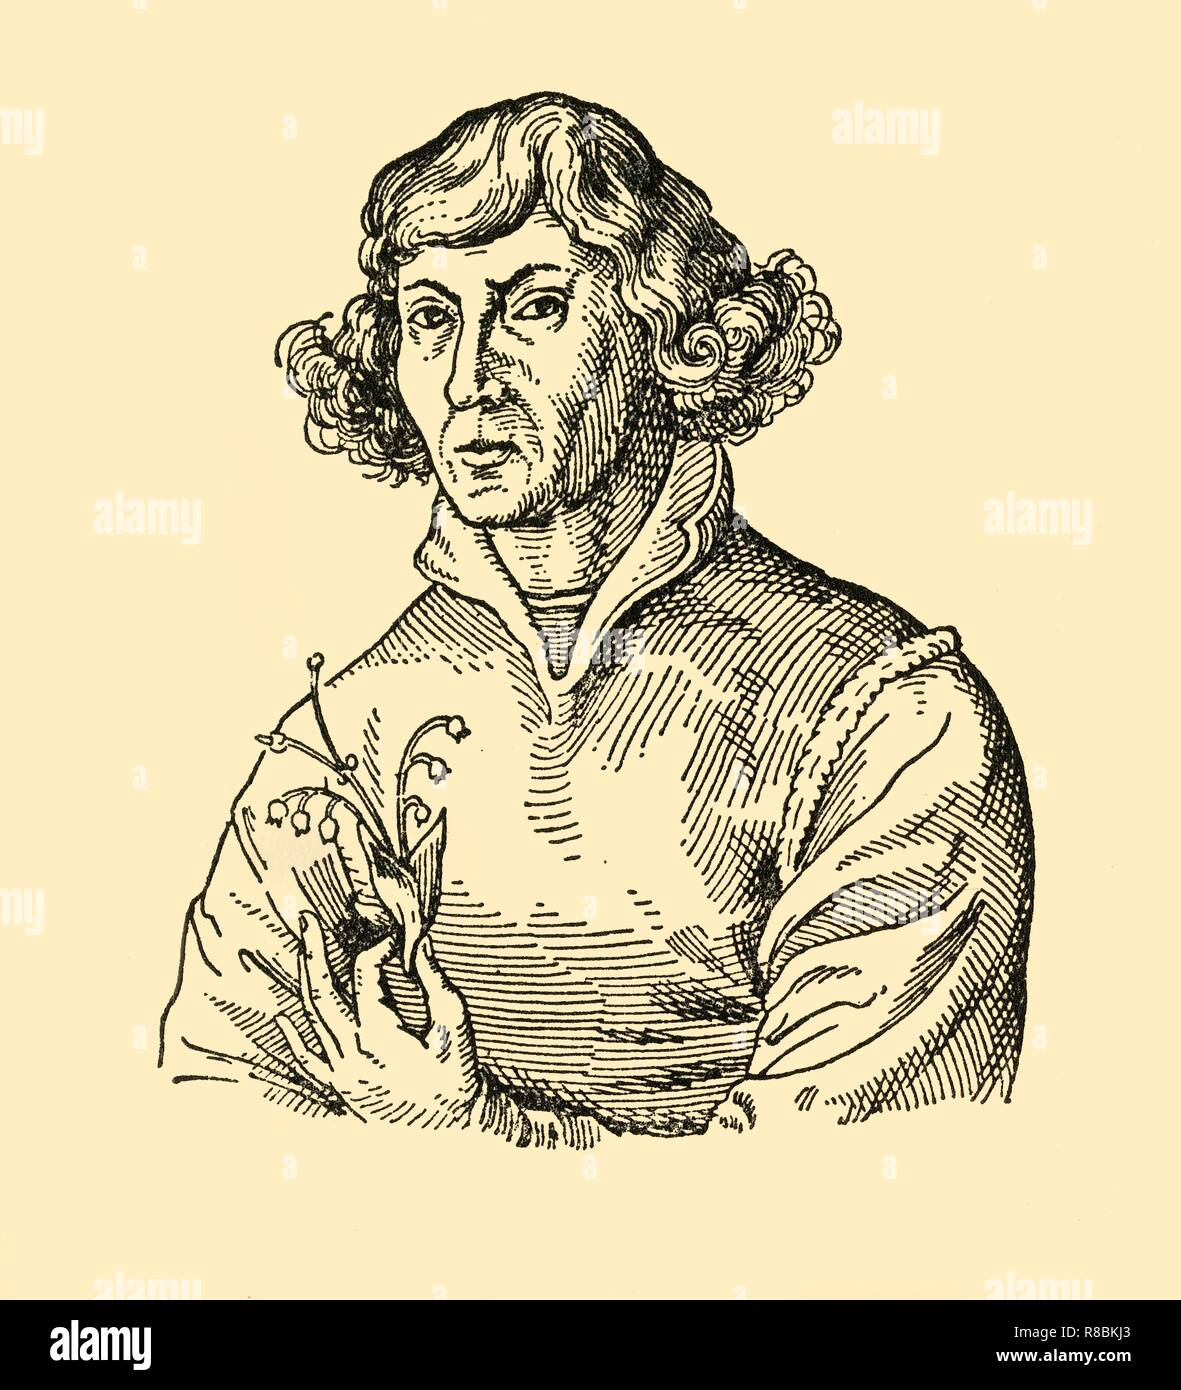 """'Nikolaus Kopernikus', (1933). Portrait of mathematician and astronomer Nicolaus Copernicus (1473-1543) whose revolutionary model of the universe was a major event in the history of science. His heliocentric hypothesis recognised that the Sun, rather than the Earth, is at the centre of our universe. From """"Gestalten Der Weltgeschichte"""", a book of cigarette-card portrait miniatures of figures in world history from the last four hundred years. [Germany, 1933] - Stock Image"""